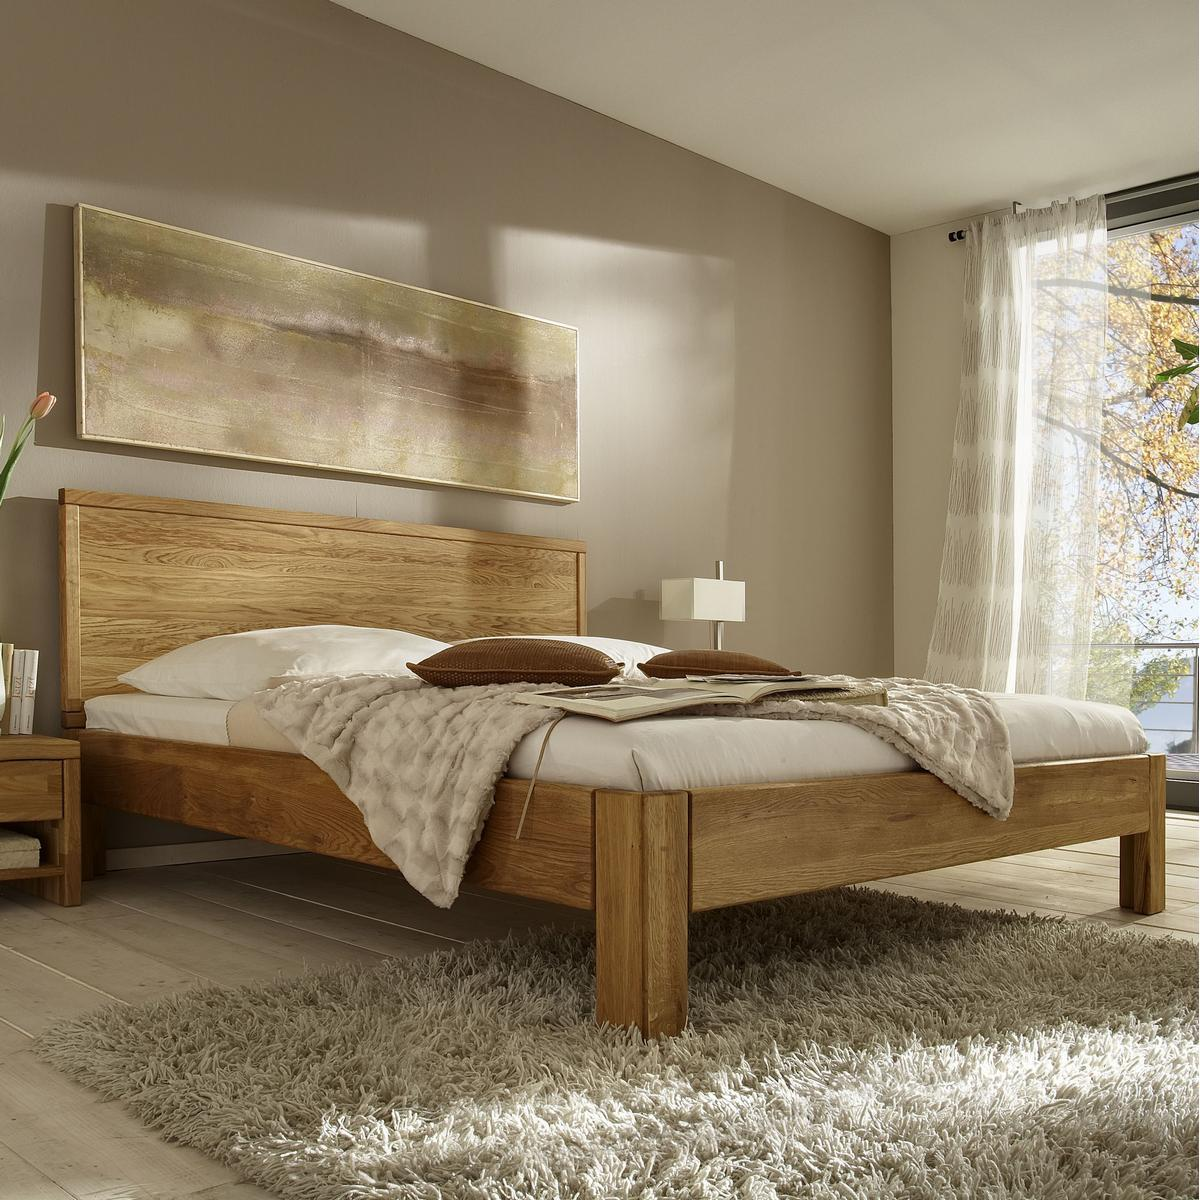 massivholz bett 160x200 xl easy sleep eiche massiv ge lt 9316 93 3. Black Bedroom Furniture Sets. Home Design Ideas